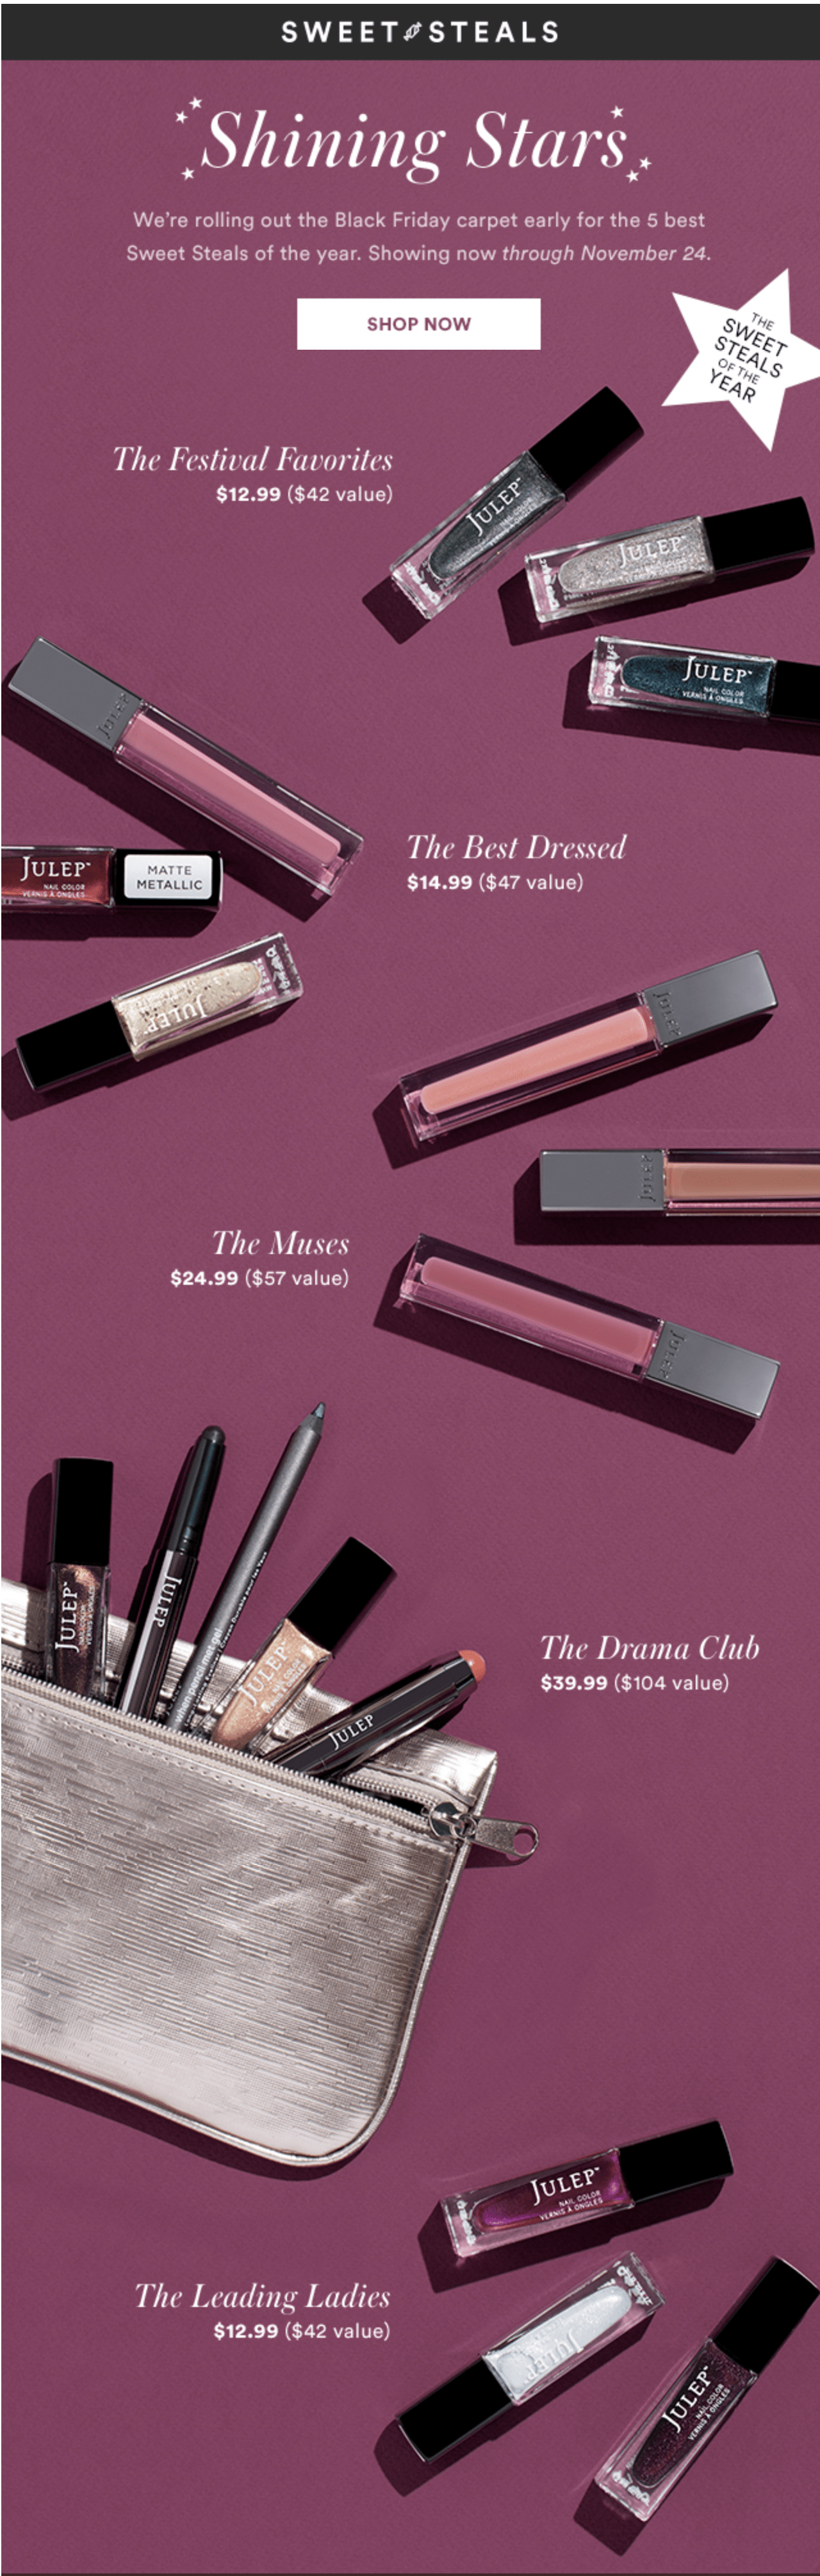 FIVE New Julep Sweet Steals Available Now!